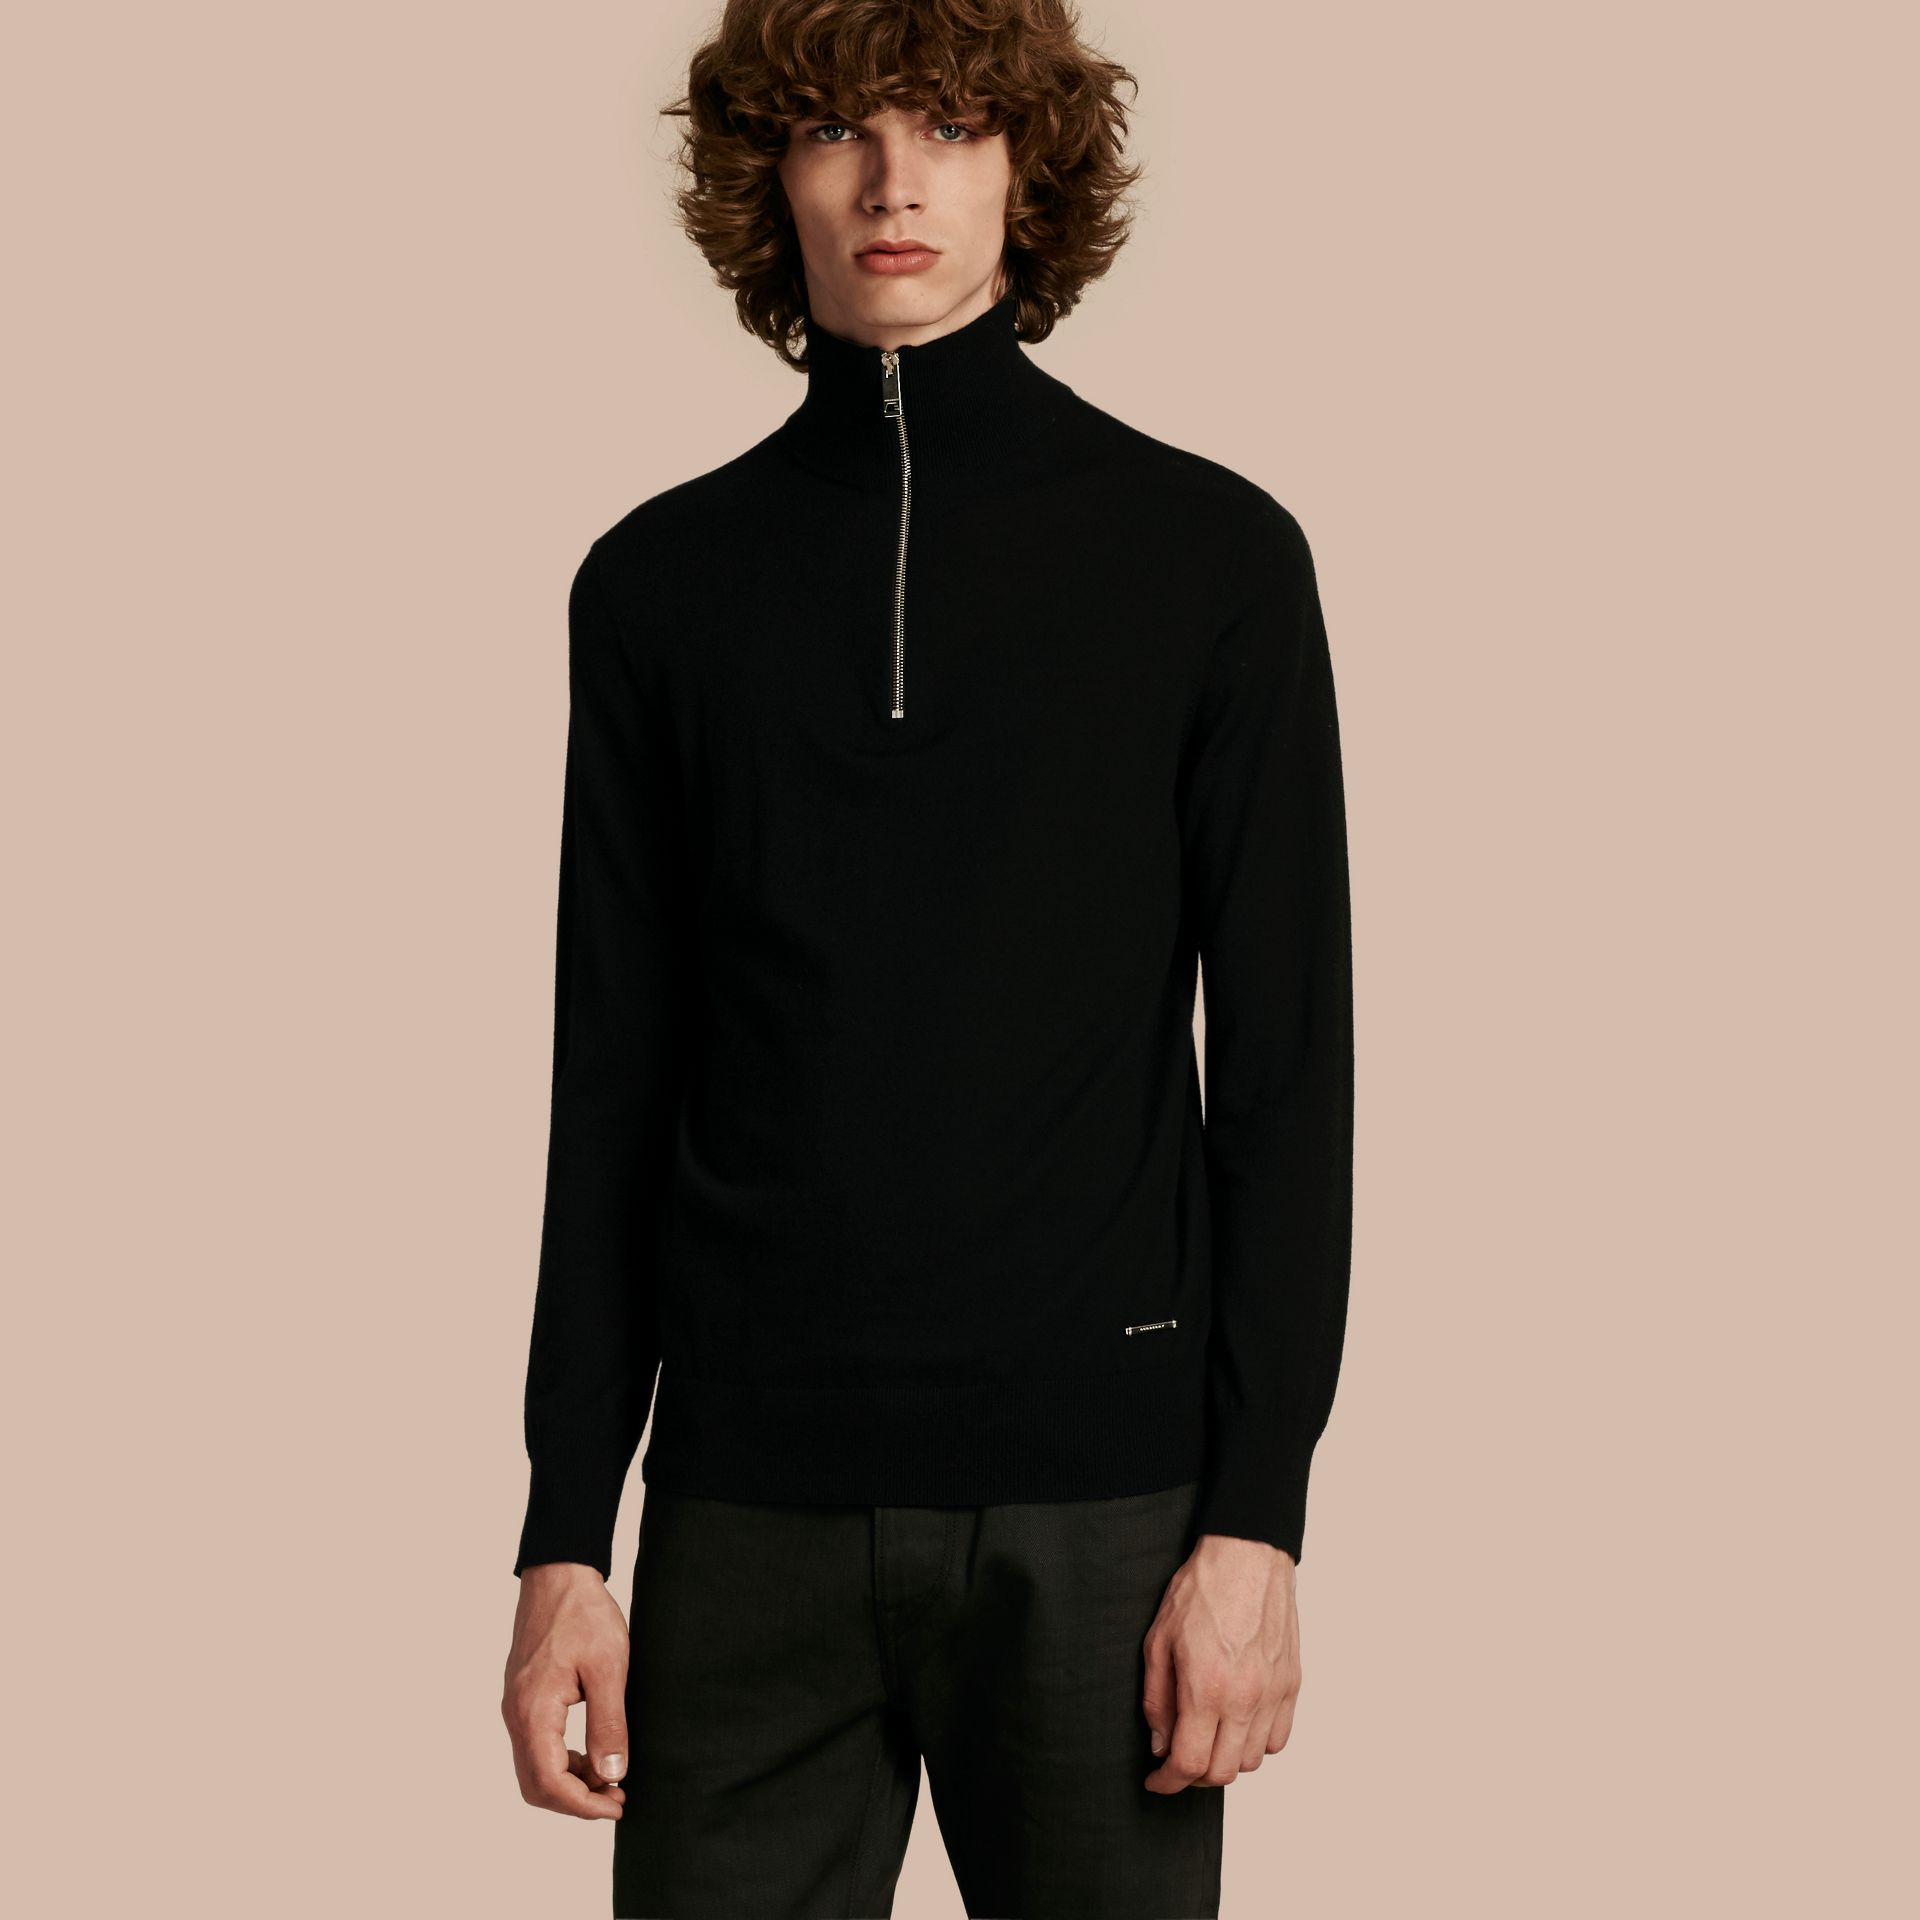 Black Zip-collar Cashmere Sweater Black - gallery image 1